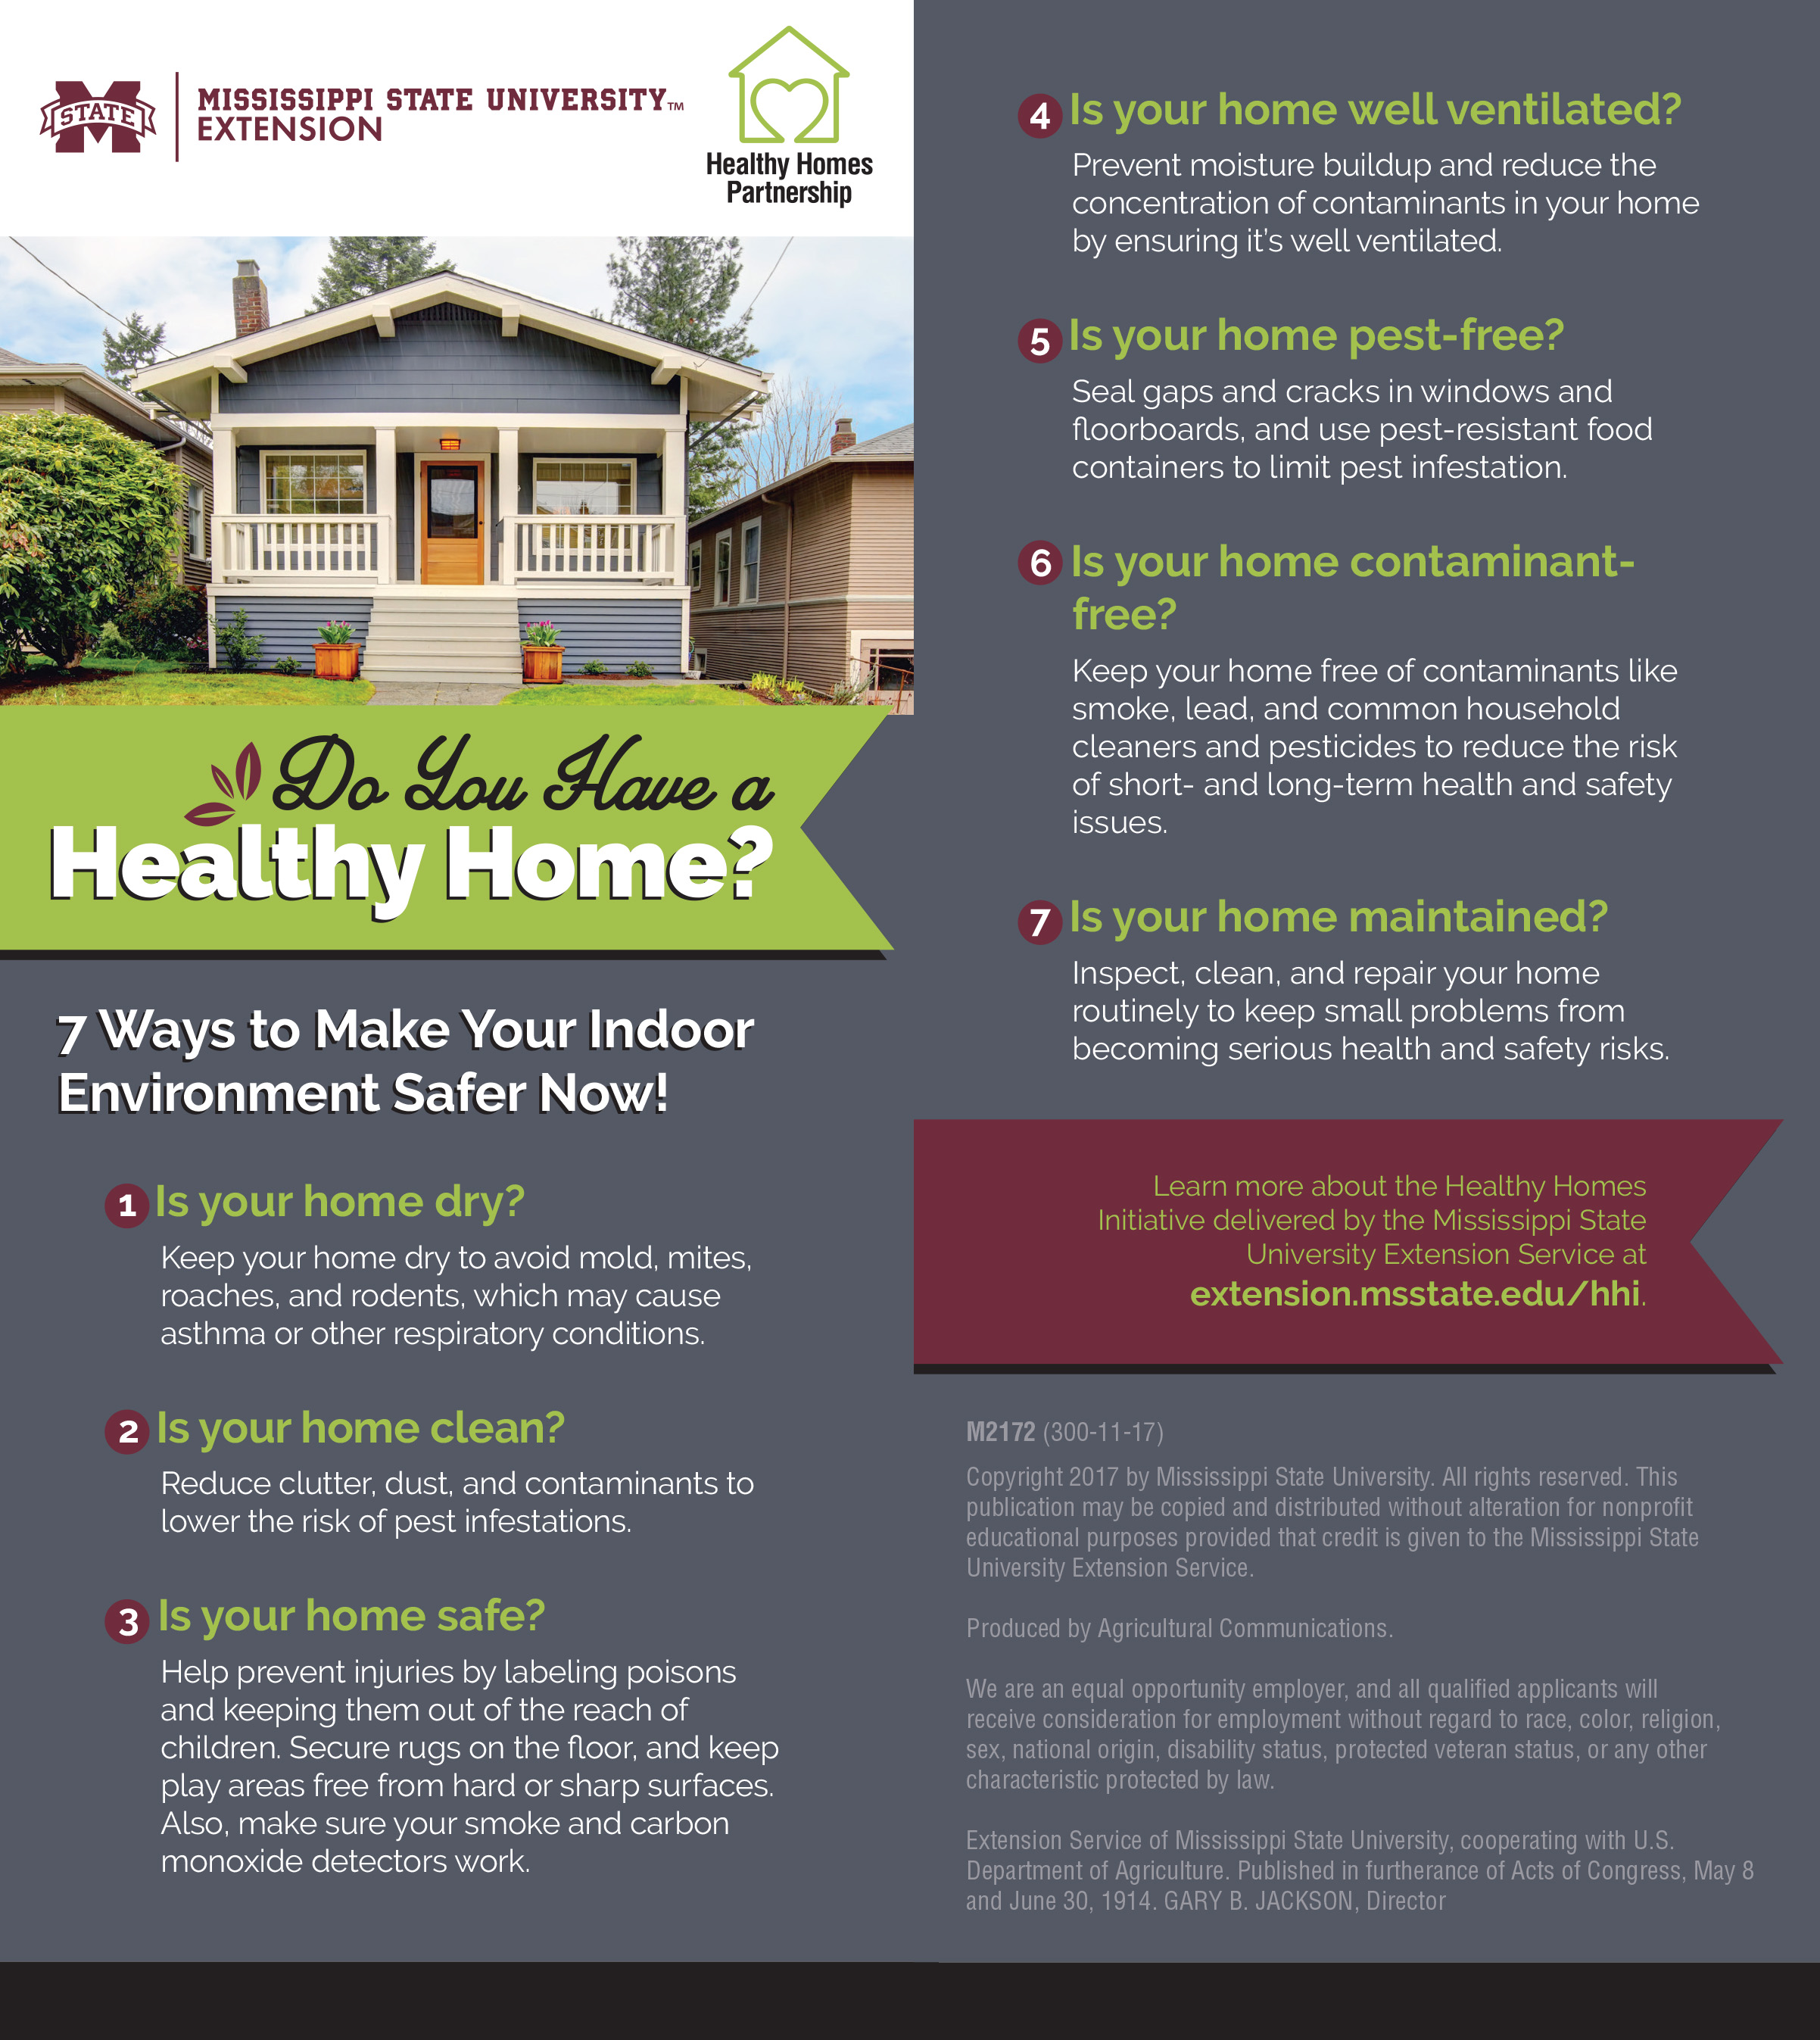 Photo of a gray and white Craftsman style house illustrates a list of seven tips for making homes healthier.